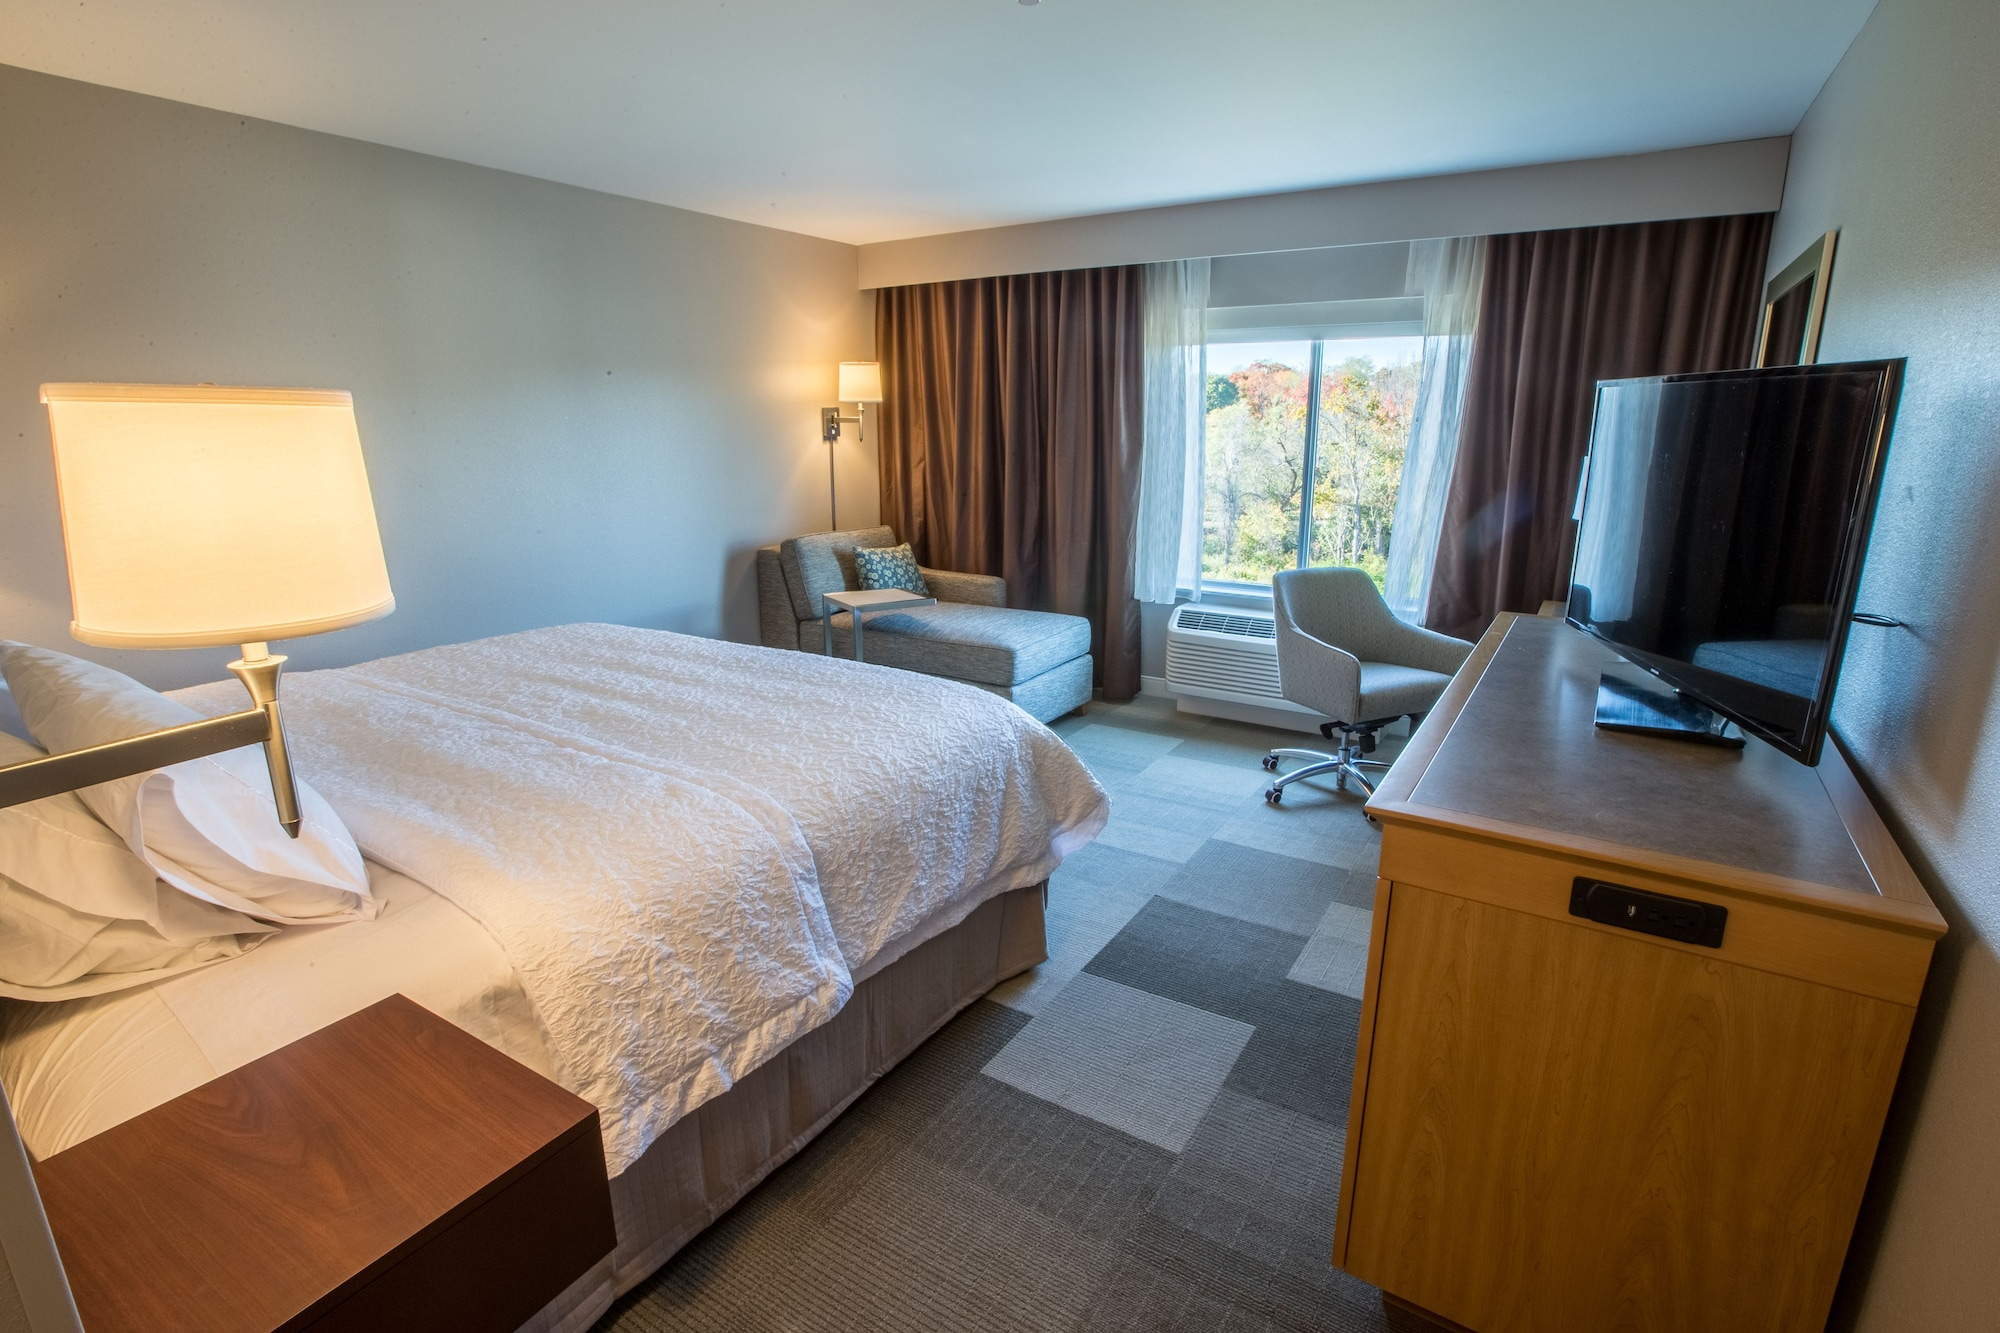 Hampton Inn by Hilton Amesbury, Essex